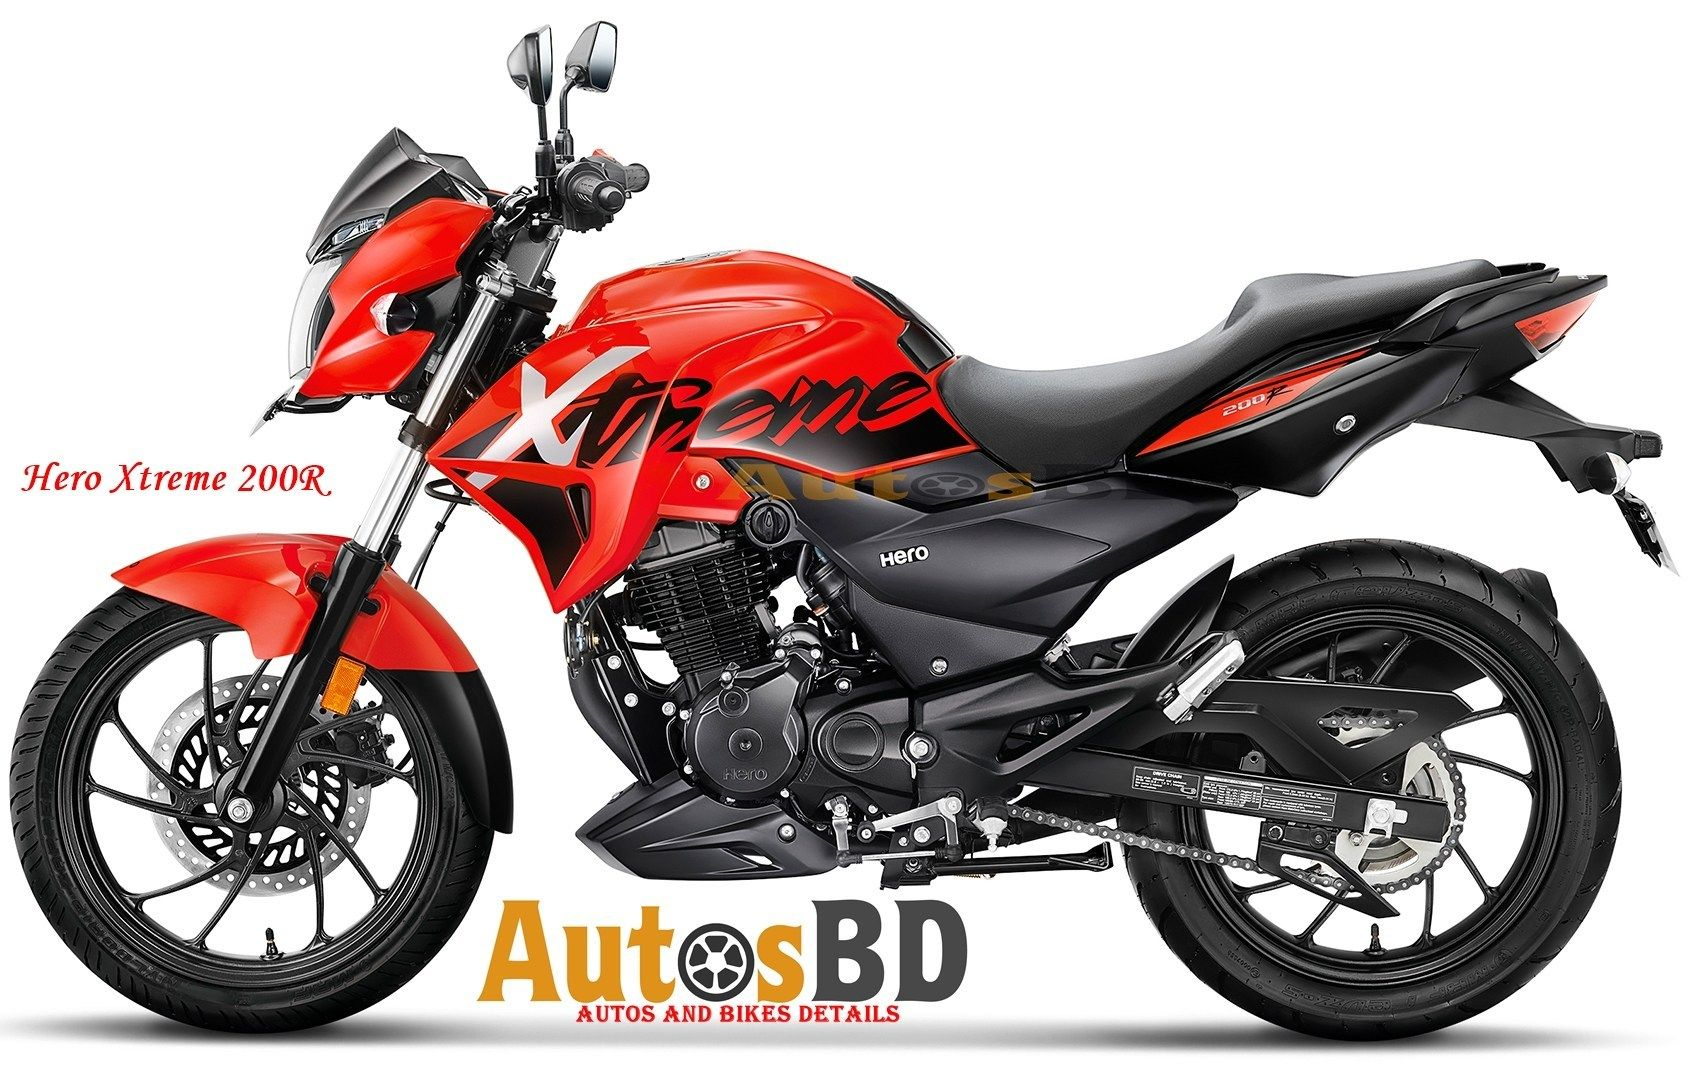 Hero Xtreme 200r Specification Bike Design Tyre Size Engine Types